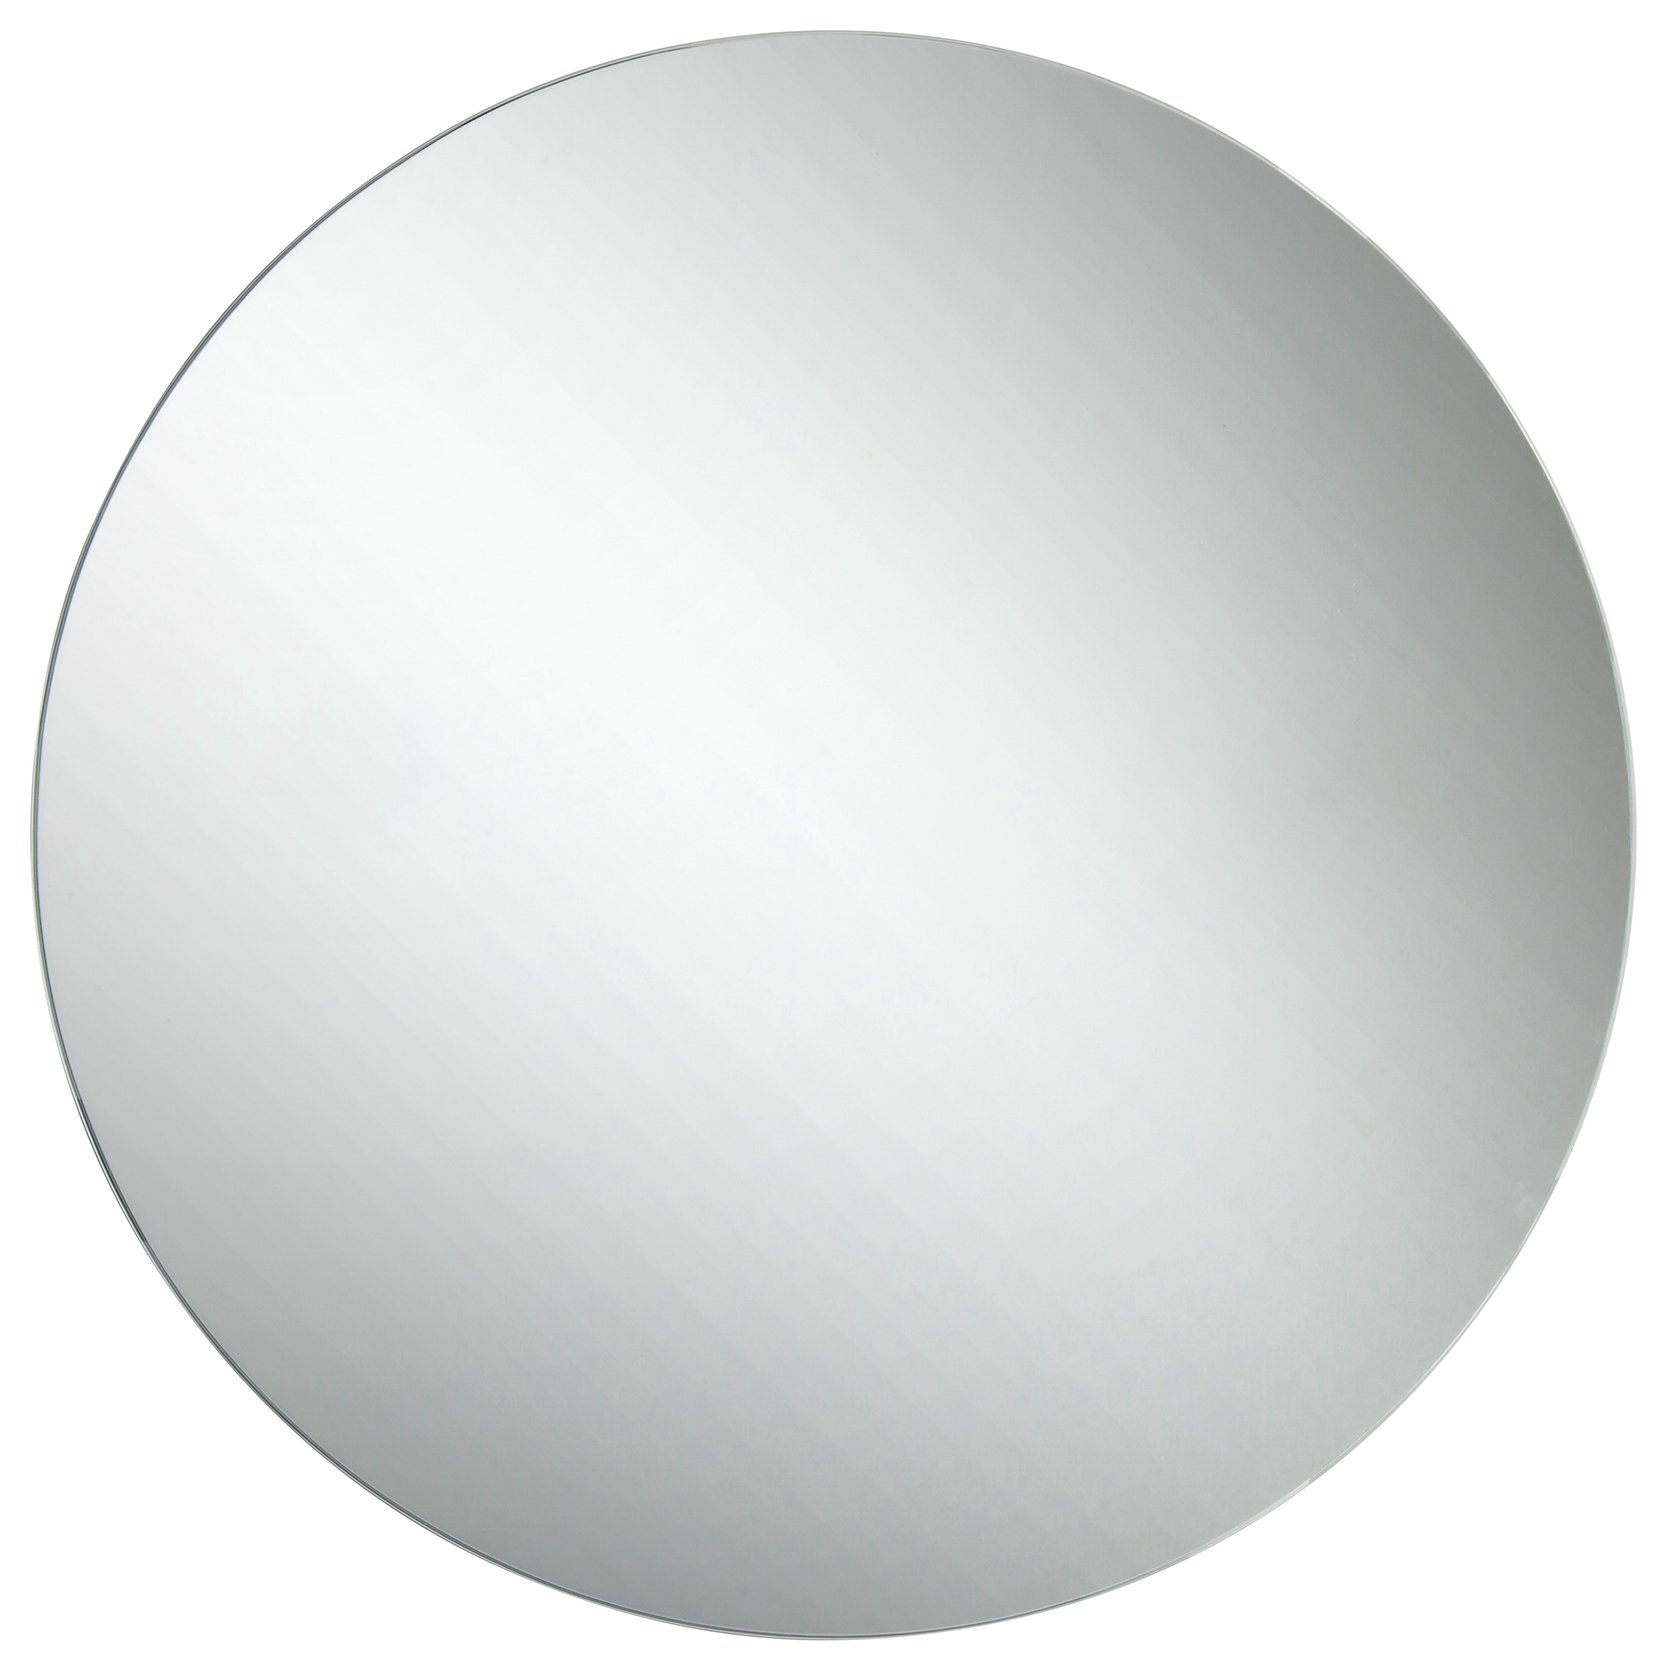 Image of Croydex Severn Round Stainless Steel Mirrored Door Cabinet